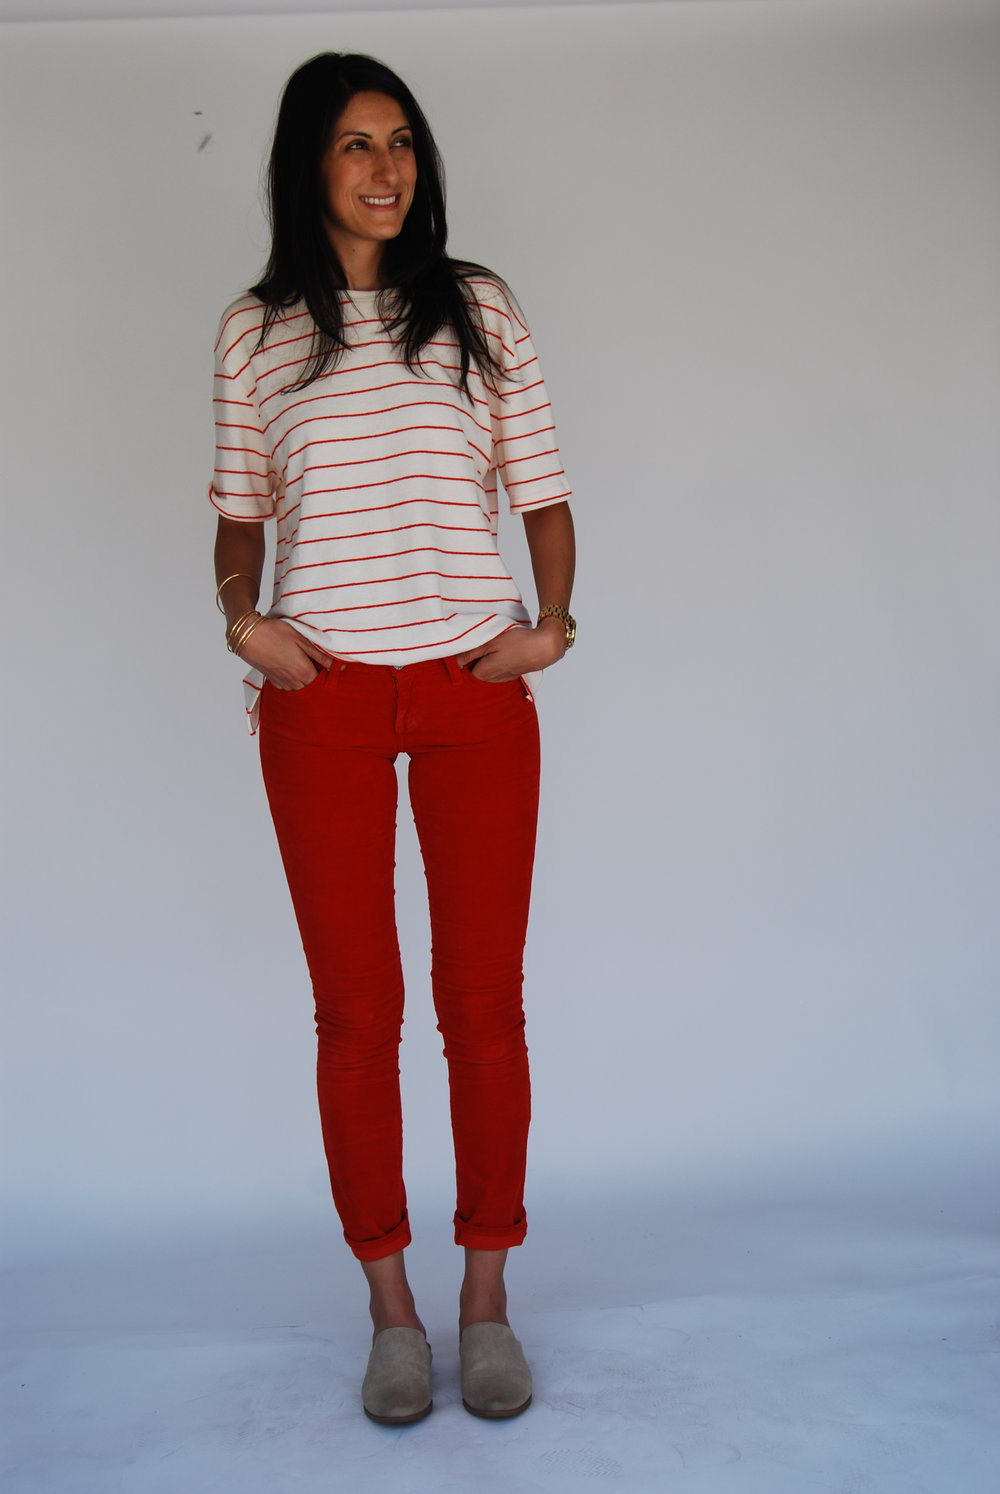 - 4. Red Cords and an oversized, striped, texture tee. This has a kinda tom-boy vibe, which I dig. That's usually more my style. But the cords are pretty tight, so that makes it more feminine. Again, some color, but still comfortable and versatile.